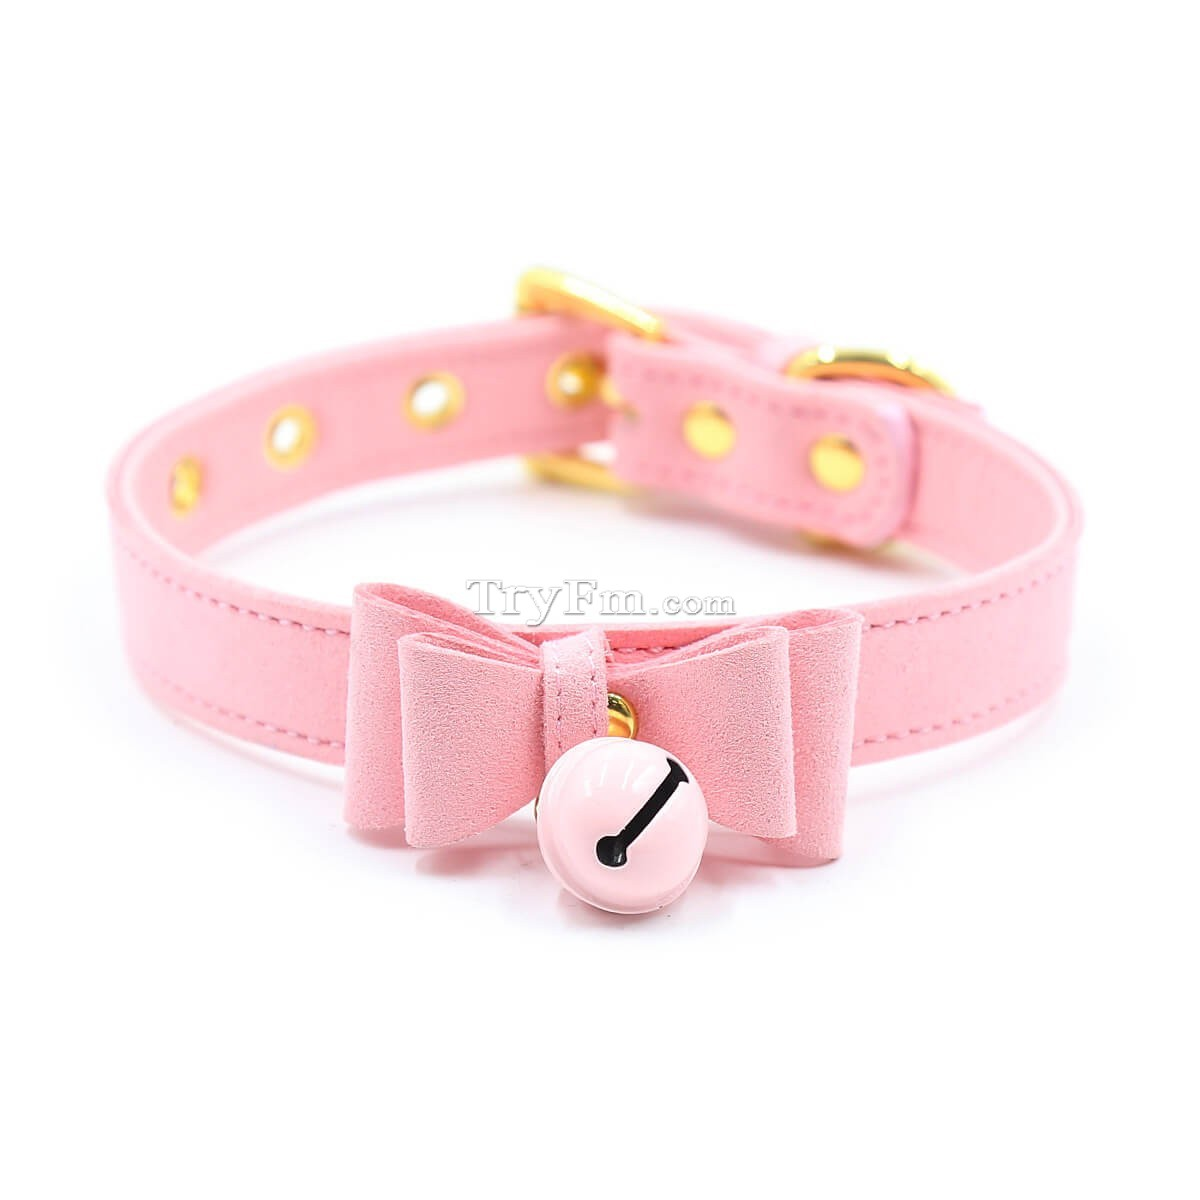 3-pink-knot-collar-will-bell2.jpg